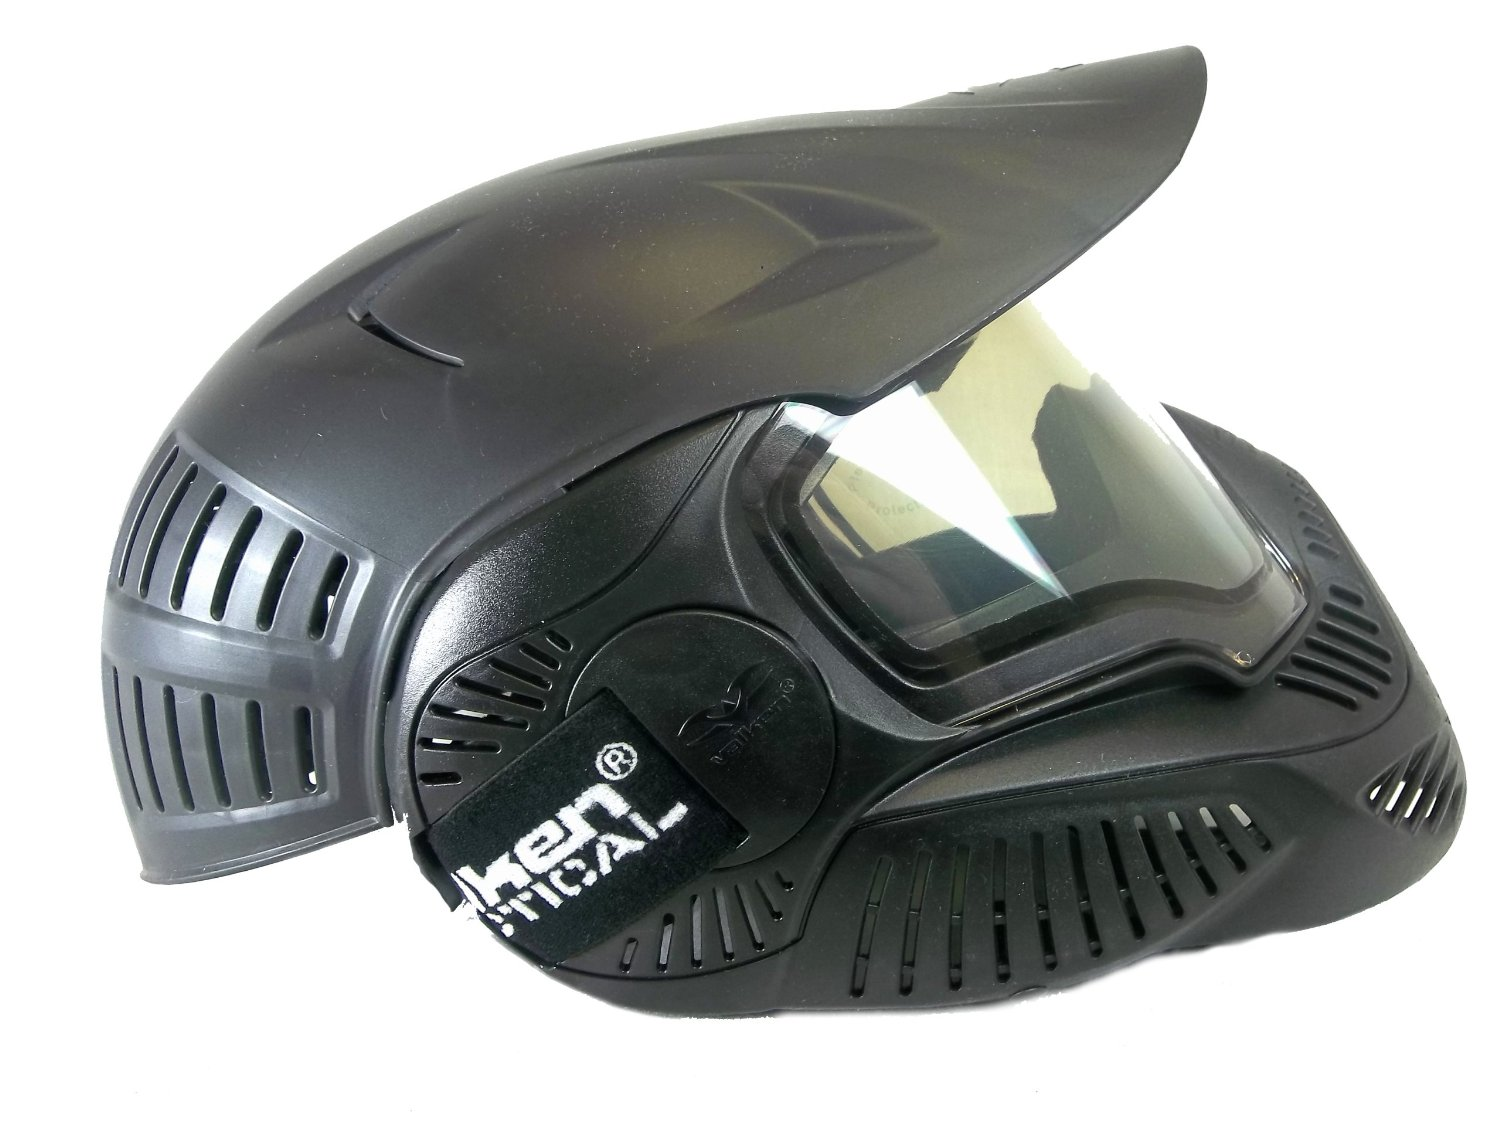 Source: http://www.ebay.com/itm/Valken-Sly-Annex-Full-Head-Coverage-MI-7-Thermal-Paintball-Mask-Goggle-Black-/161118573445